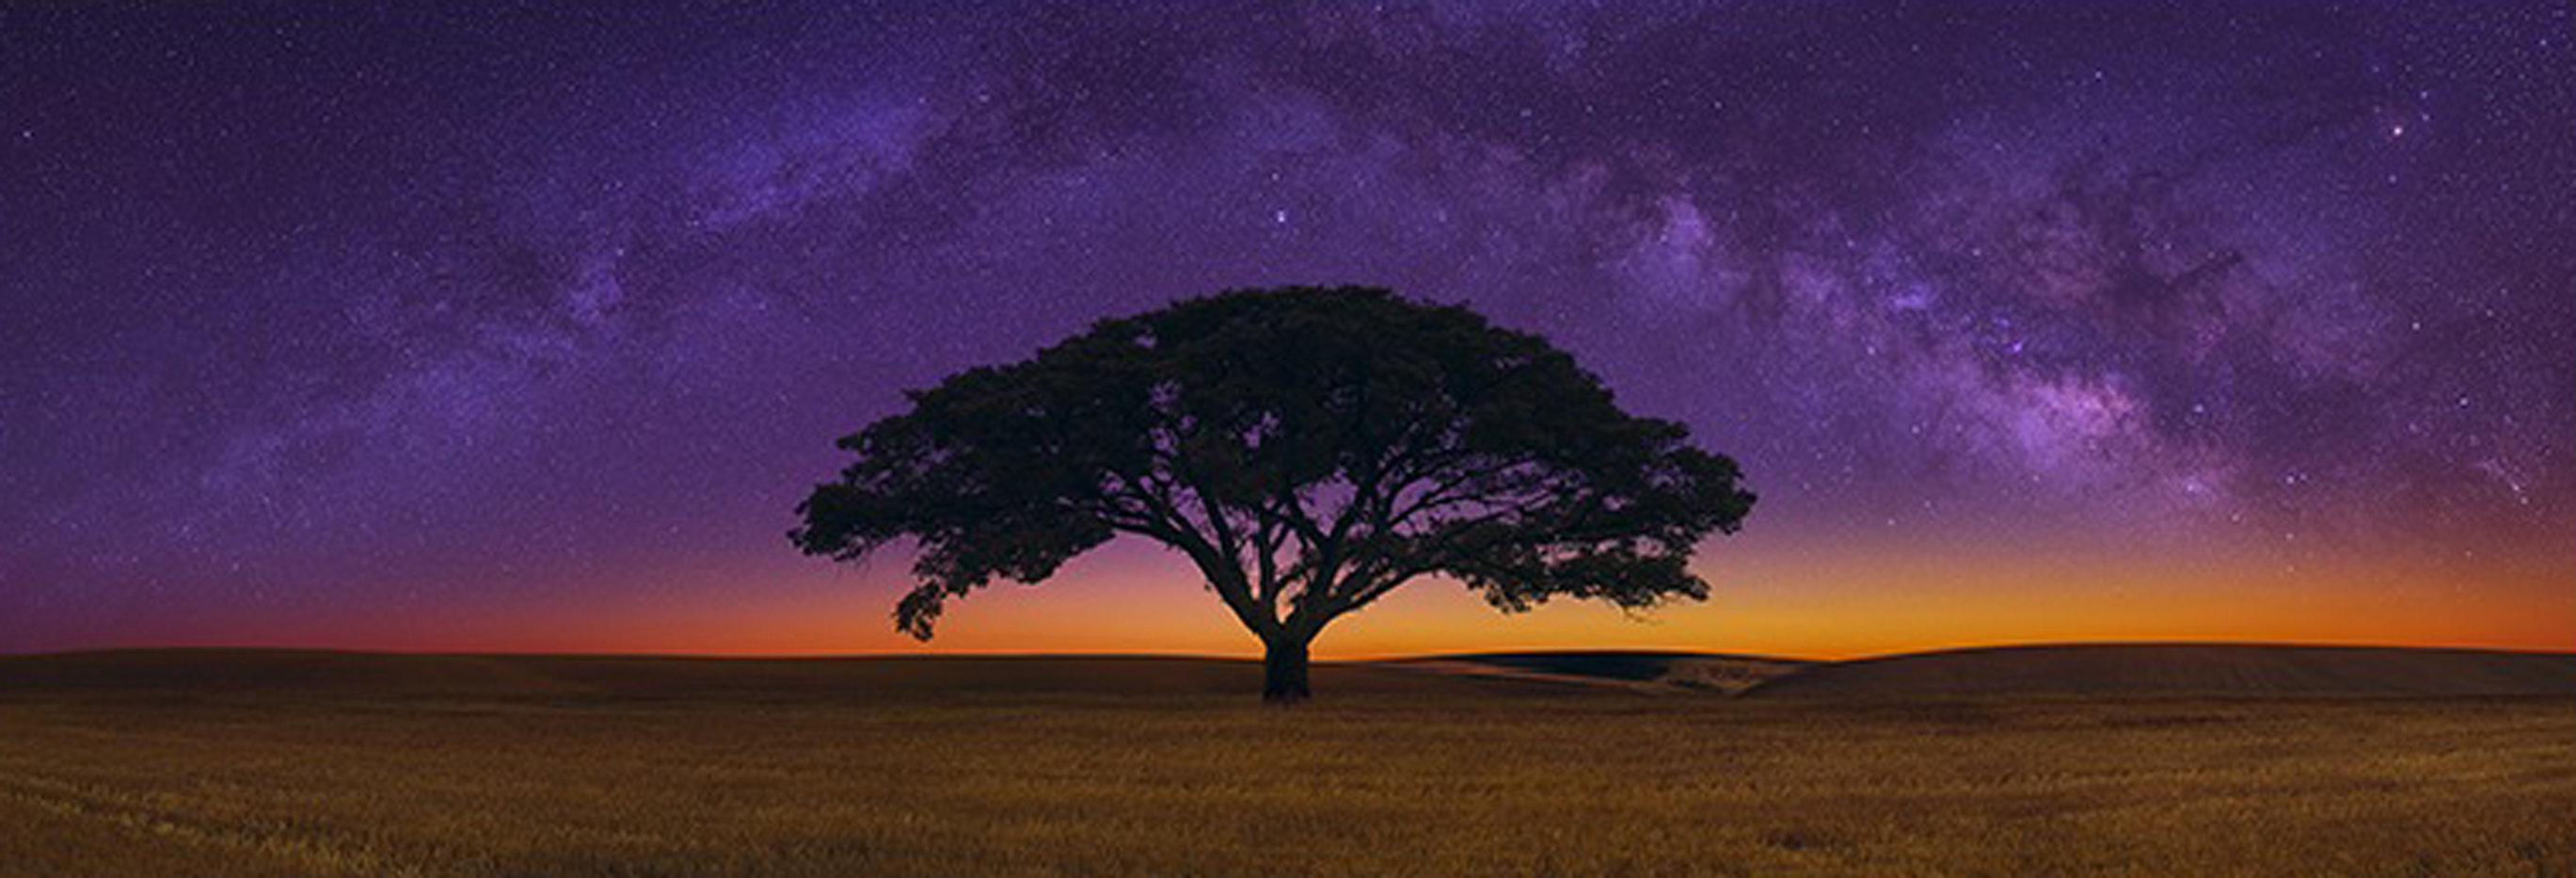 Celestial Dreams 1.5M Huge Panorama by Peter Lik